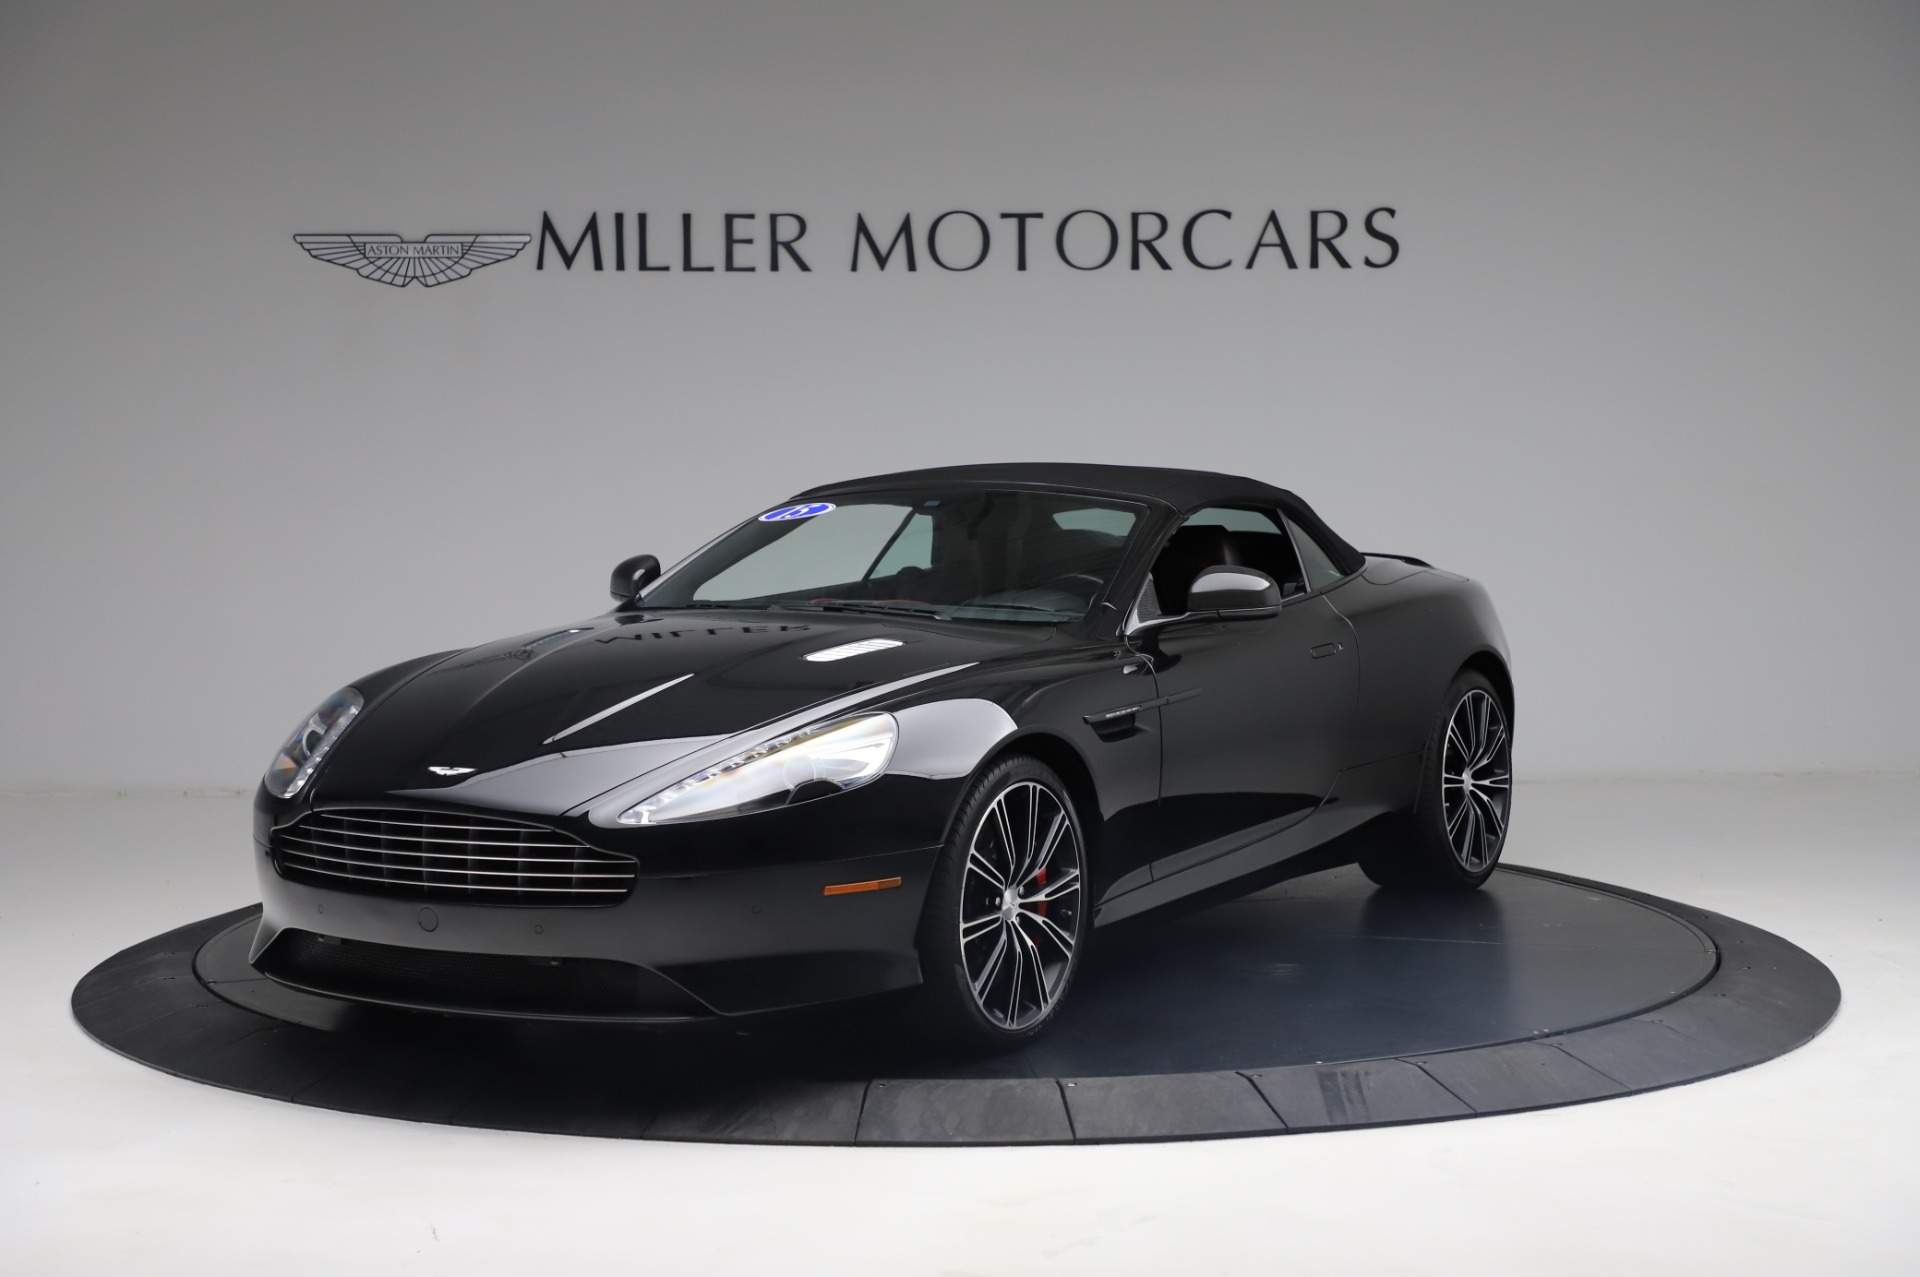 Used 2015 Aston Martin DB9 Convertible For Sale In Westport, CT 1919_p13